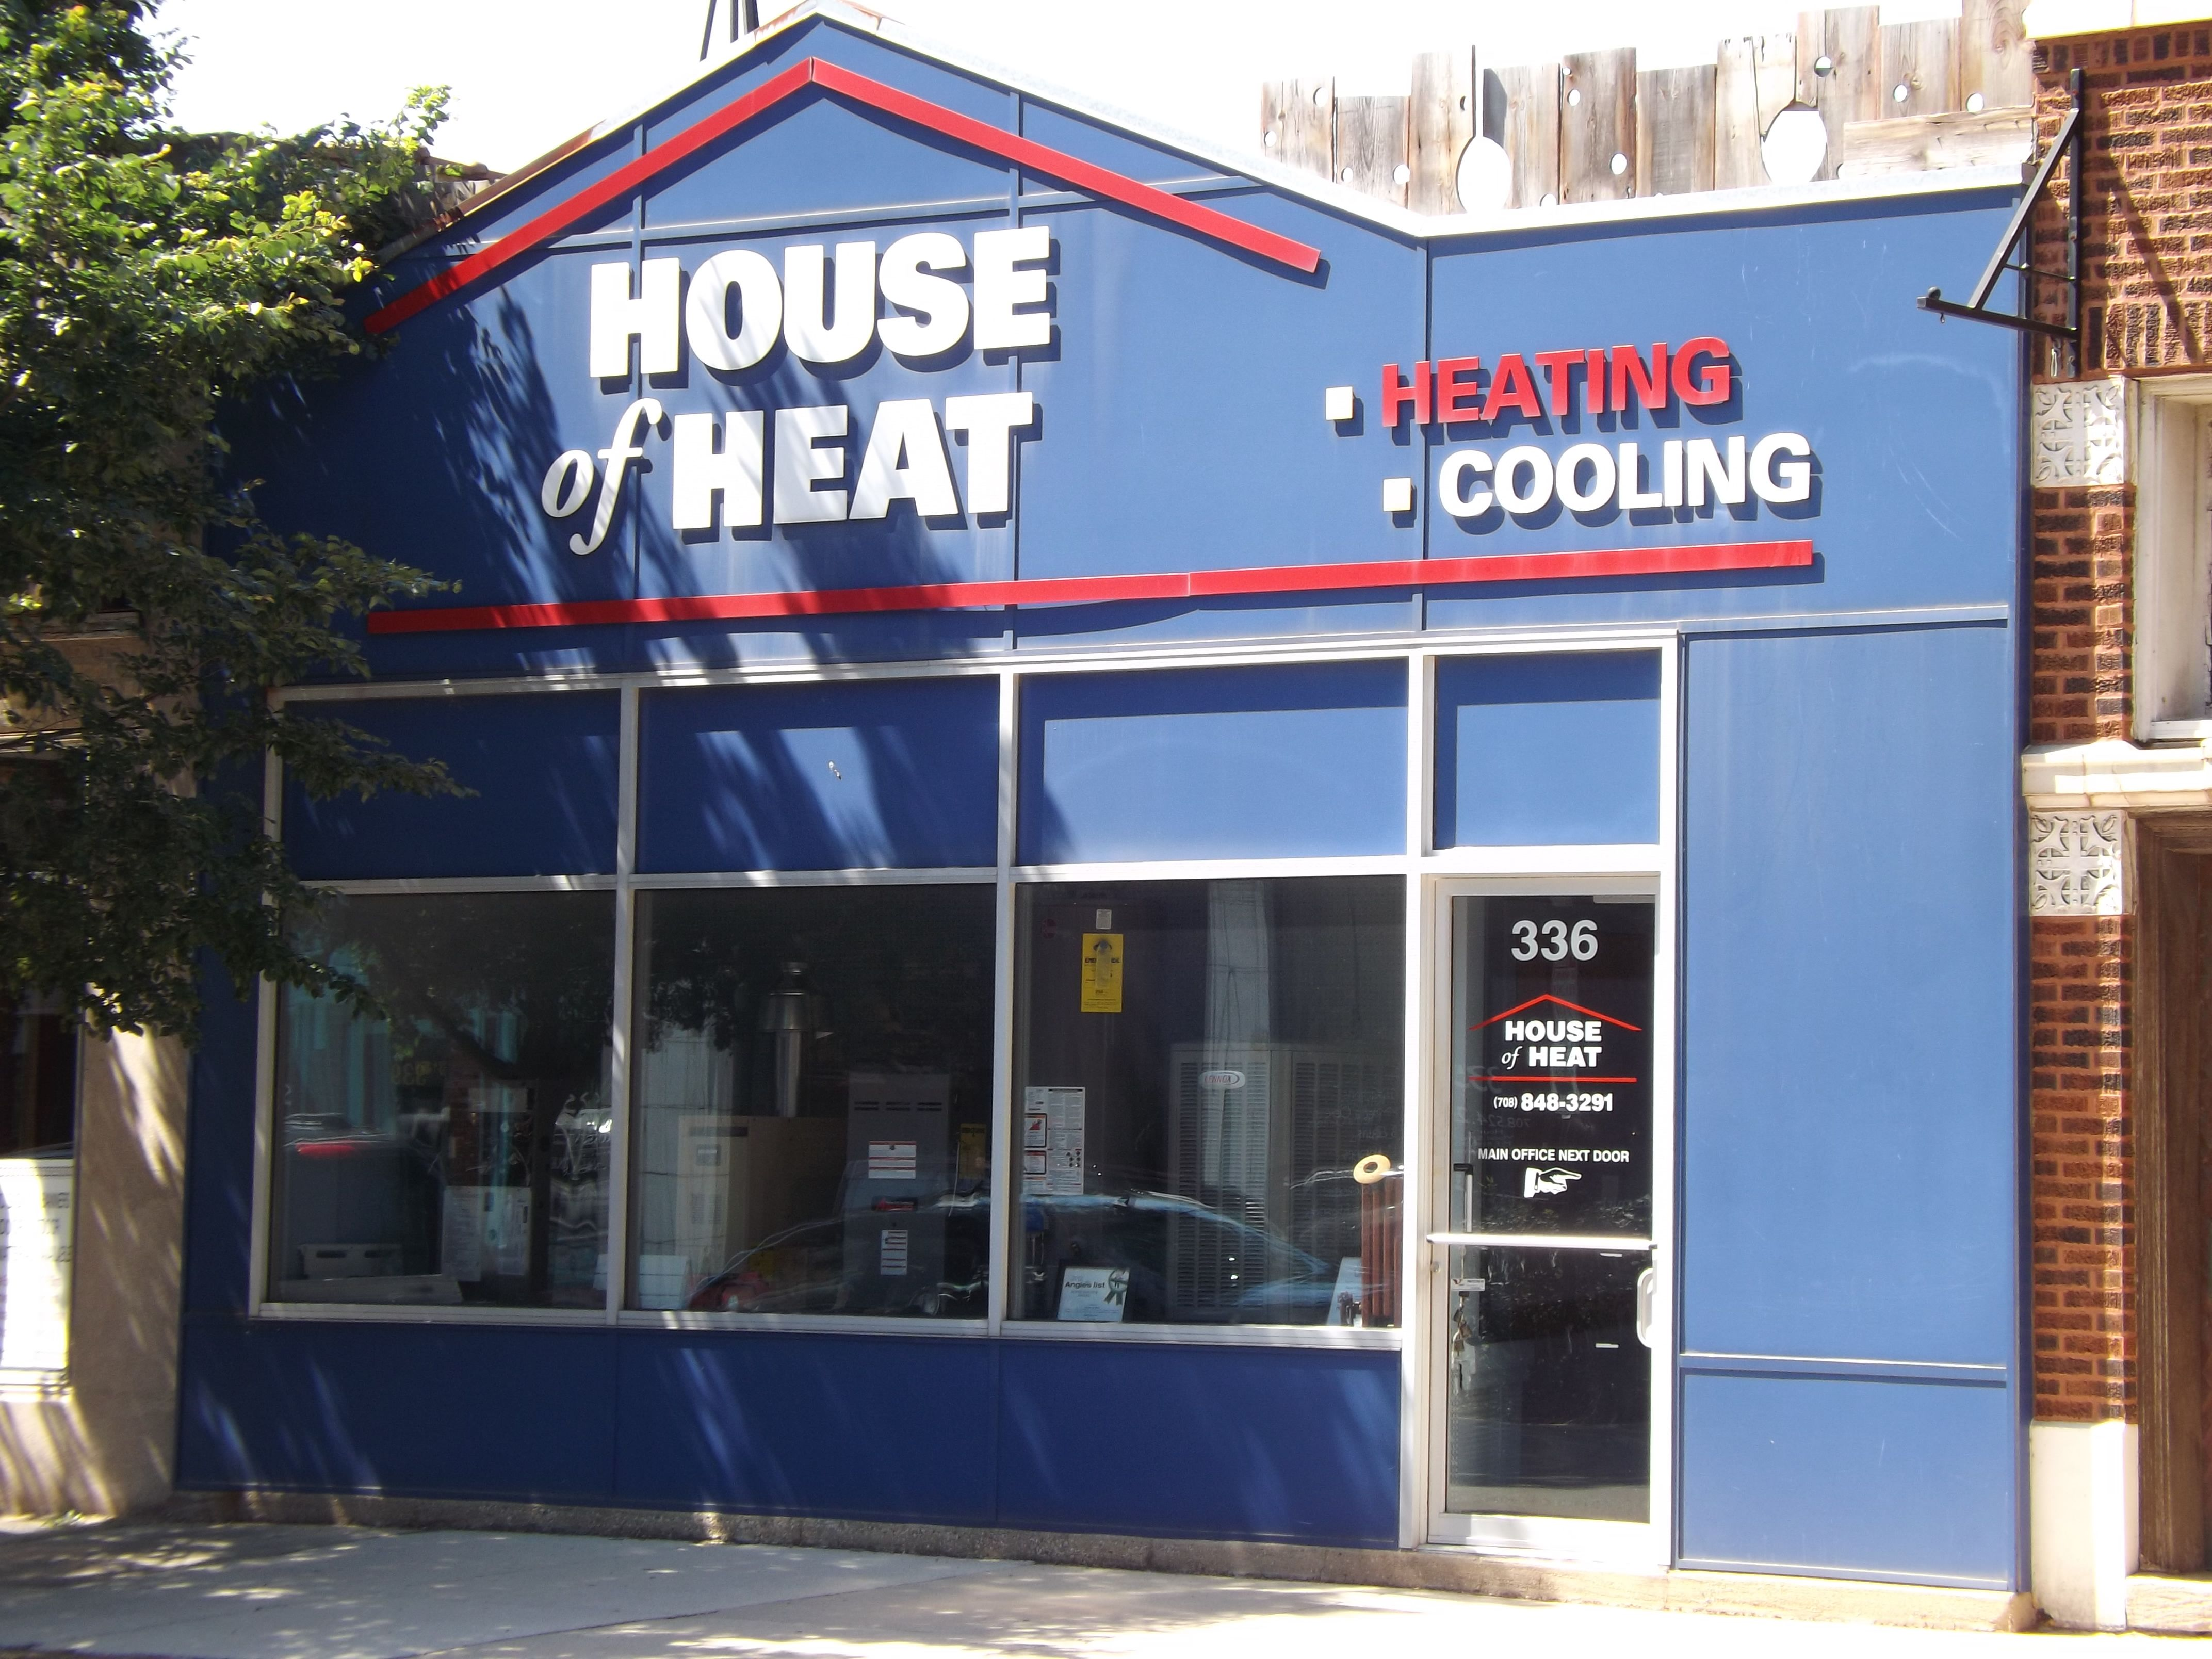 House Of Heat Heating And Cooling Opad Oakpark House Heating